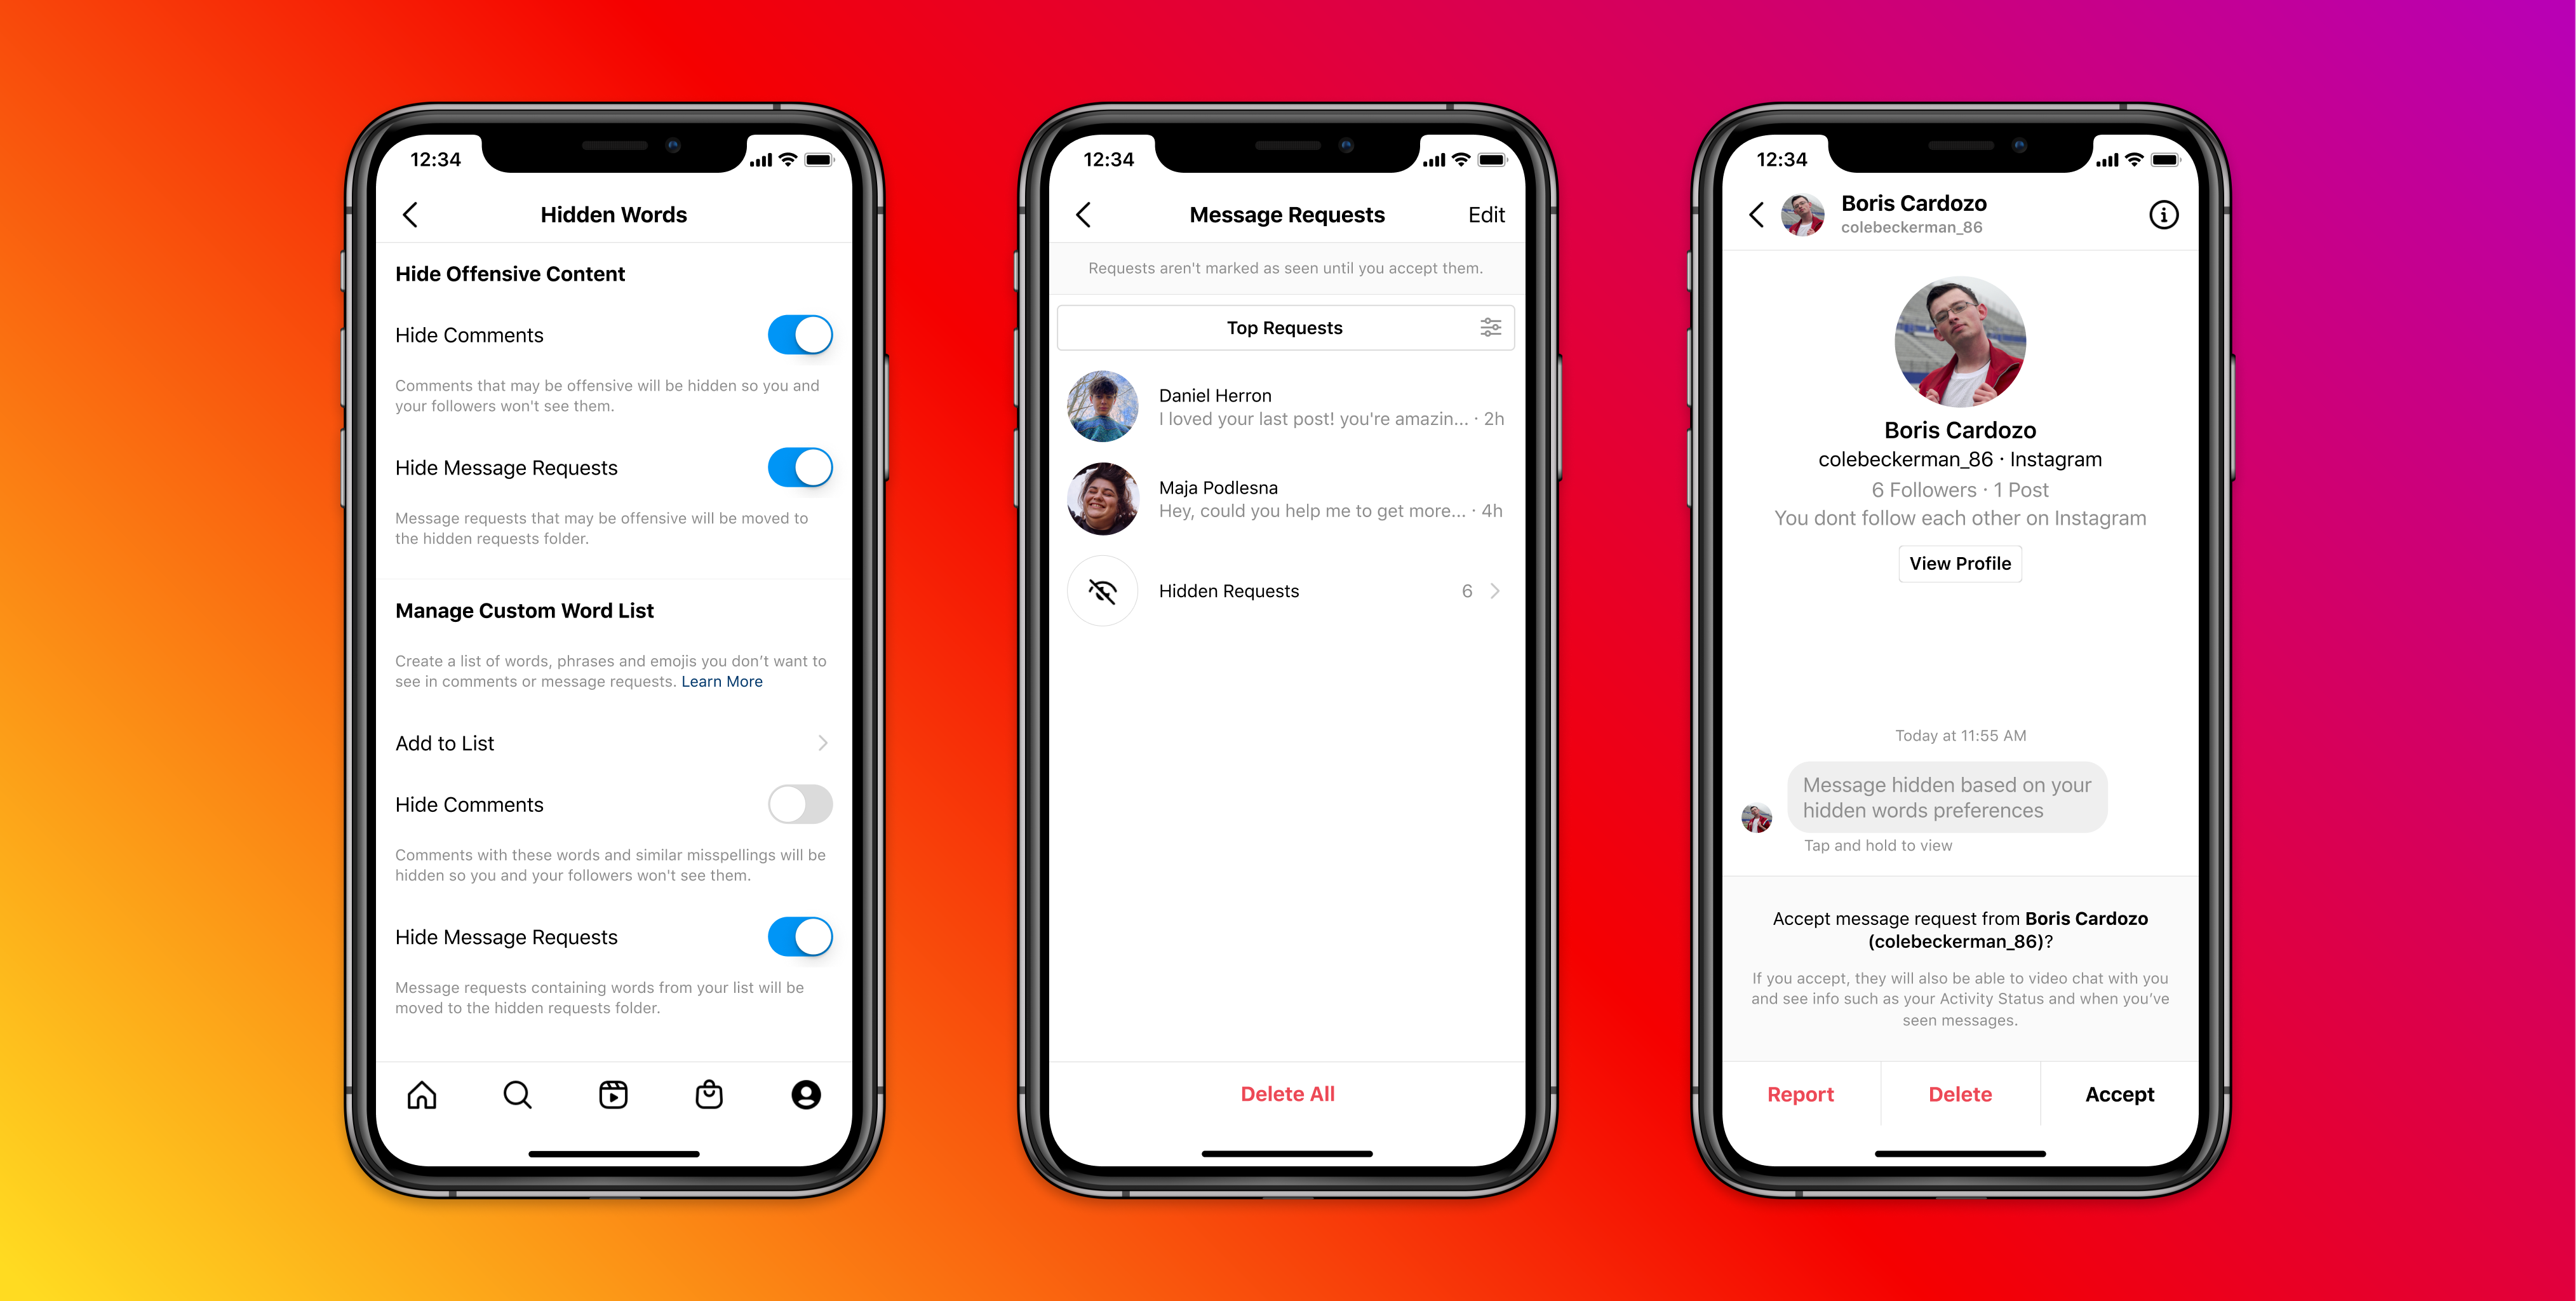 Instagram launches tools to filter out abusive DMs based on keywords and emojis, and to block people, even on new accounts